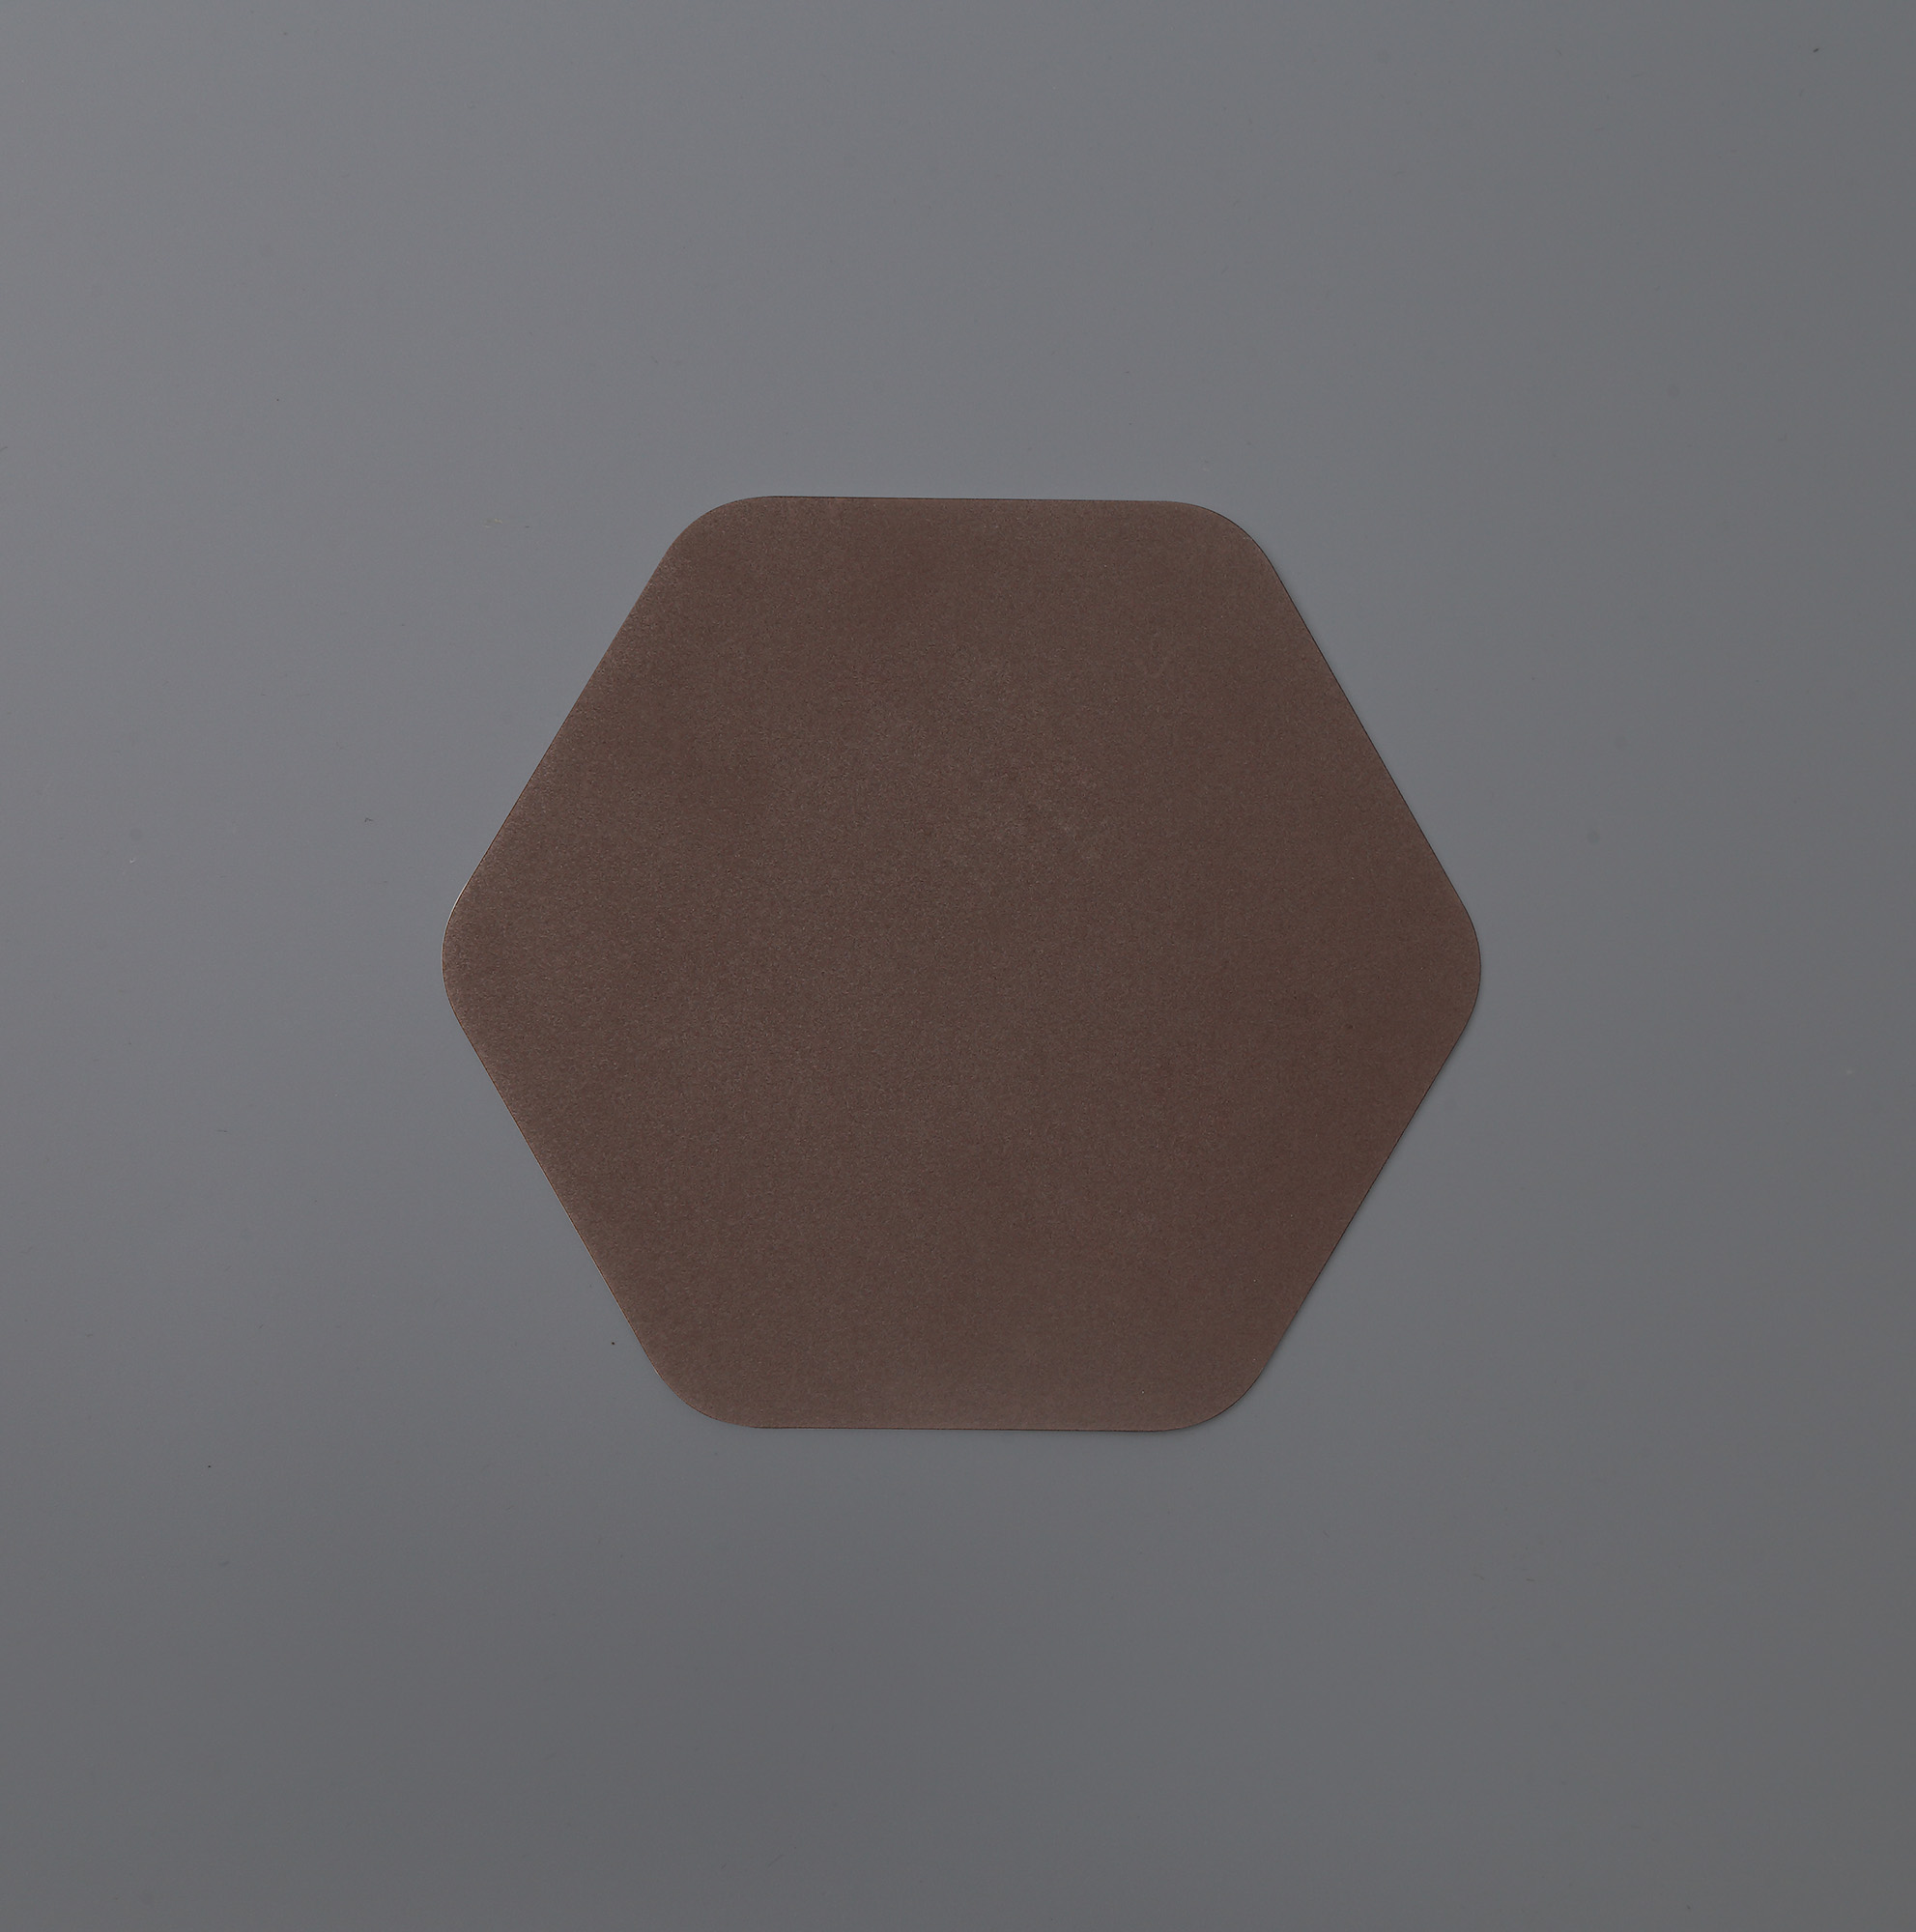 150mm Non-Electric Hexagonal Plate